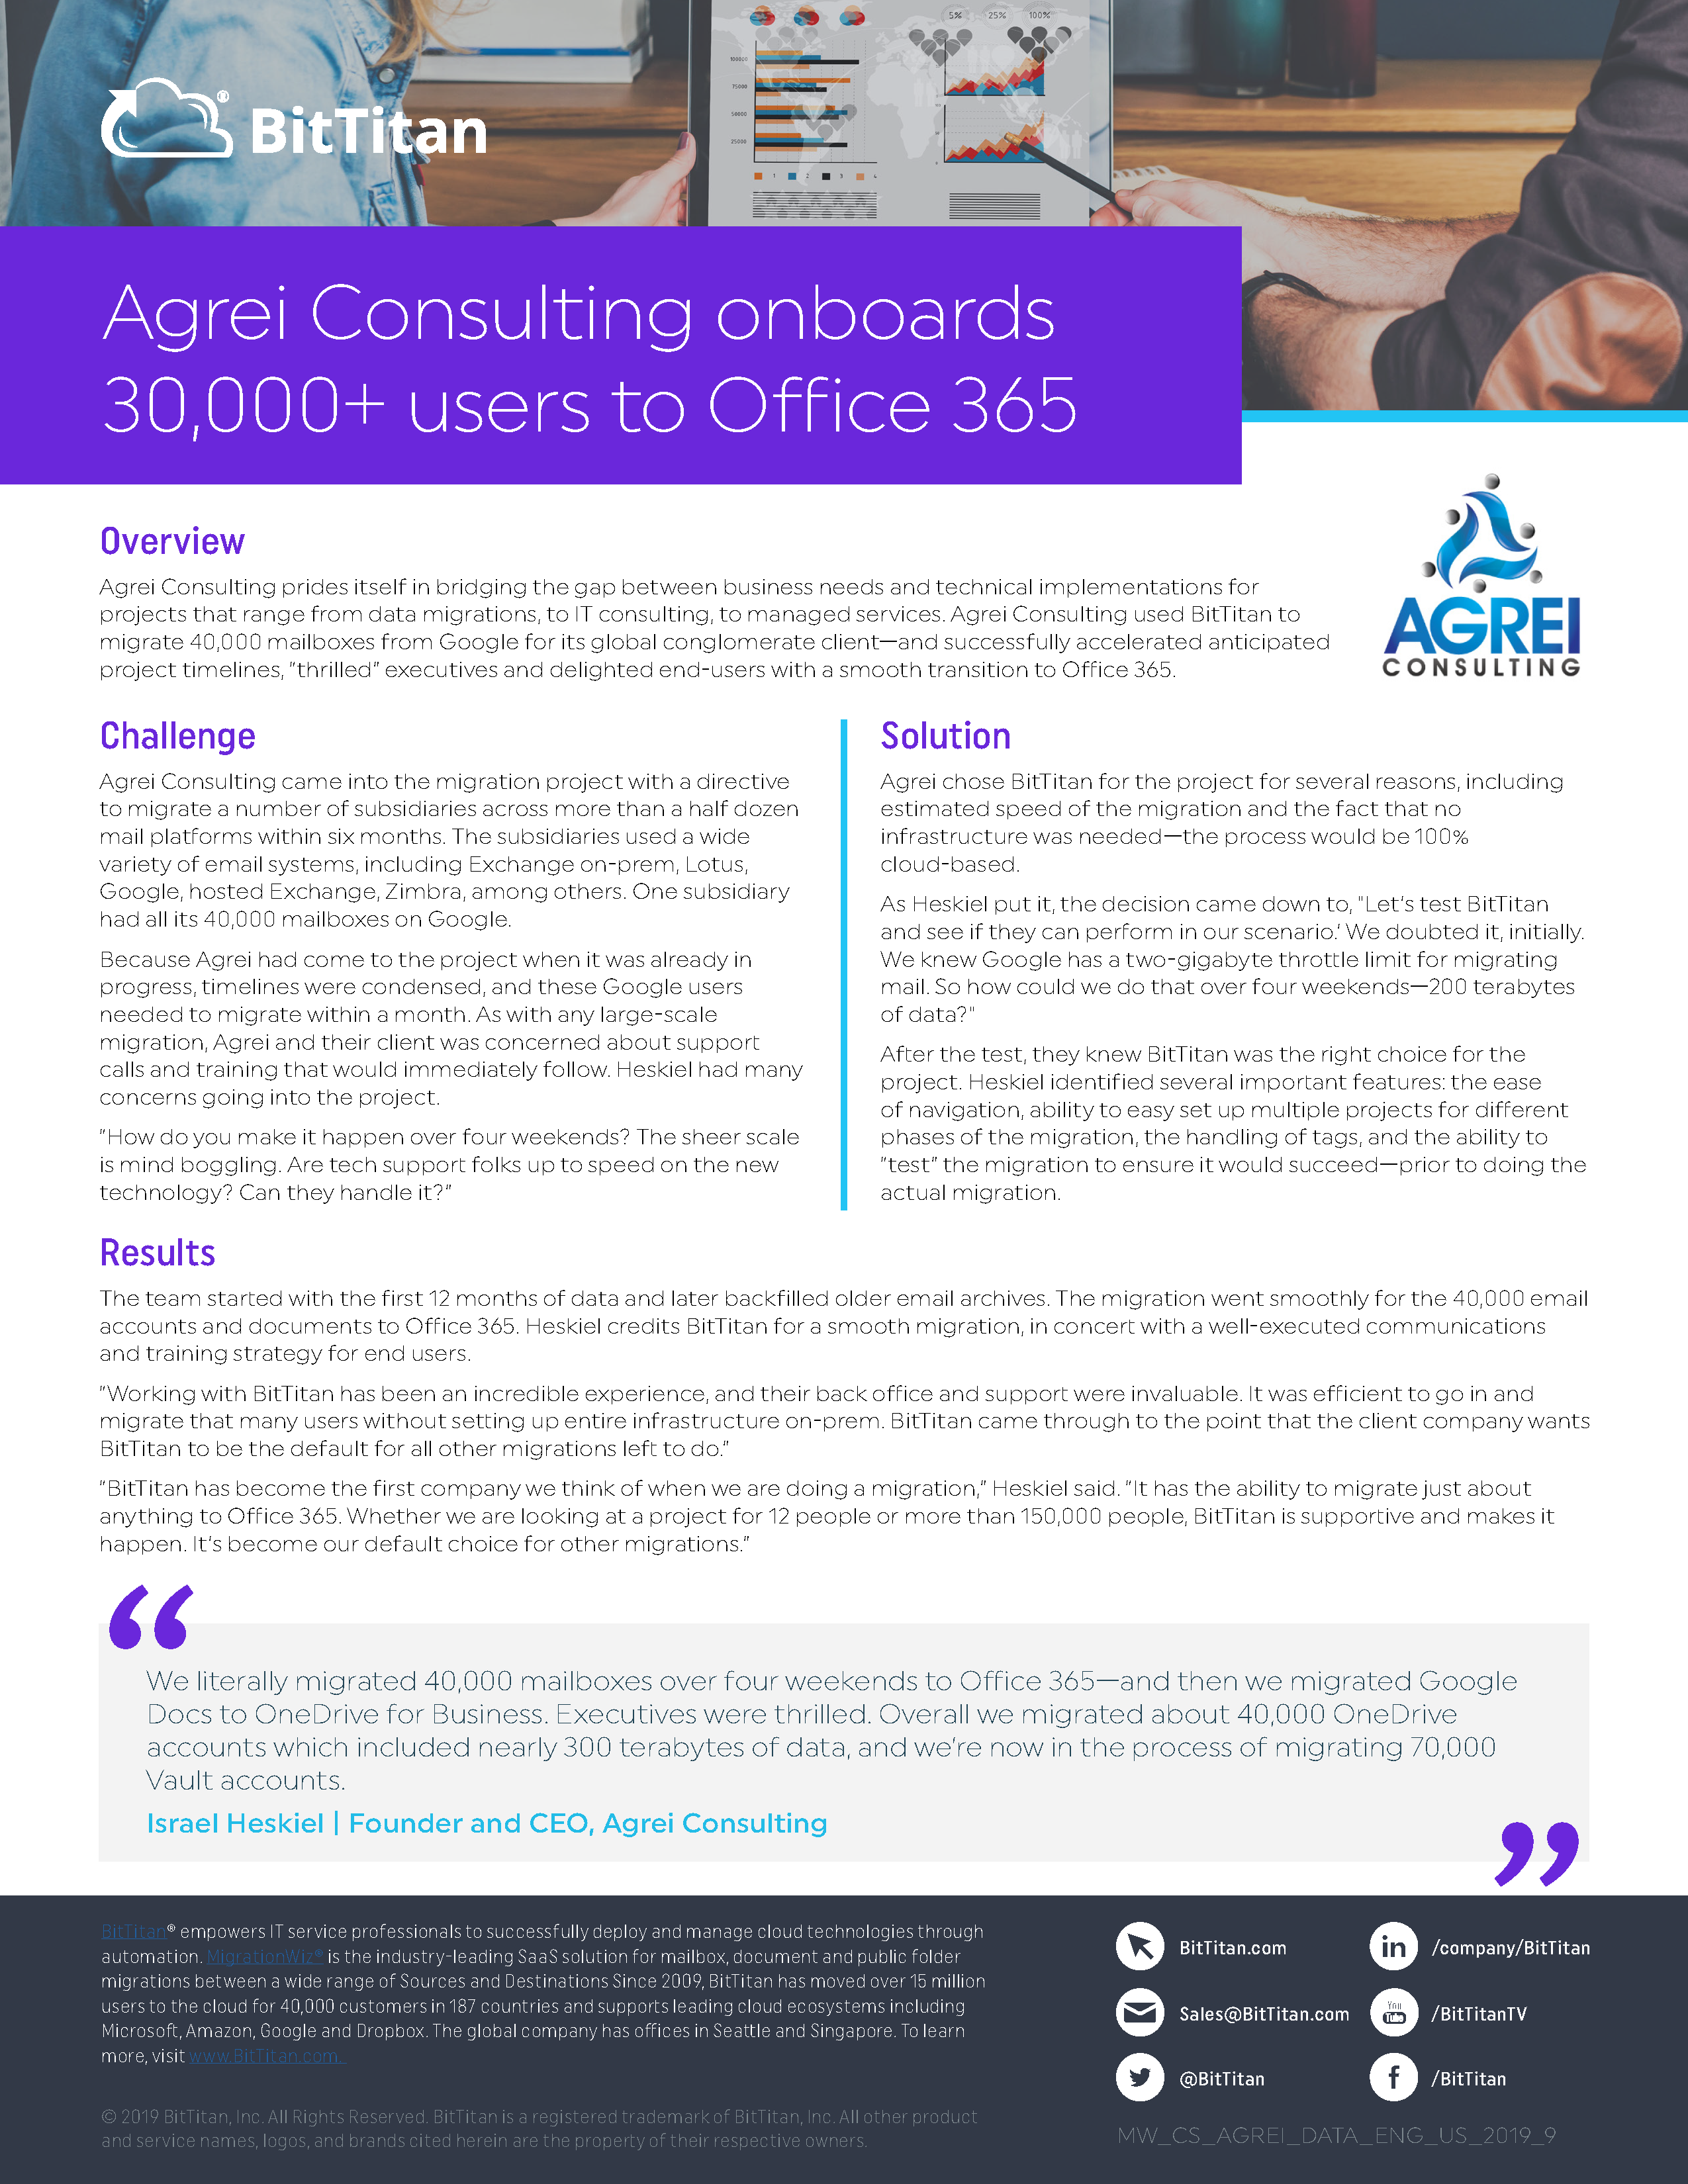 Agrei Consulting: MigrationWiz Case Study